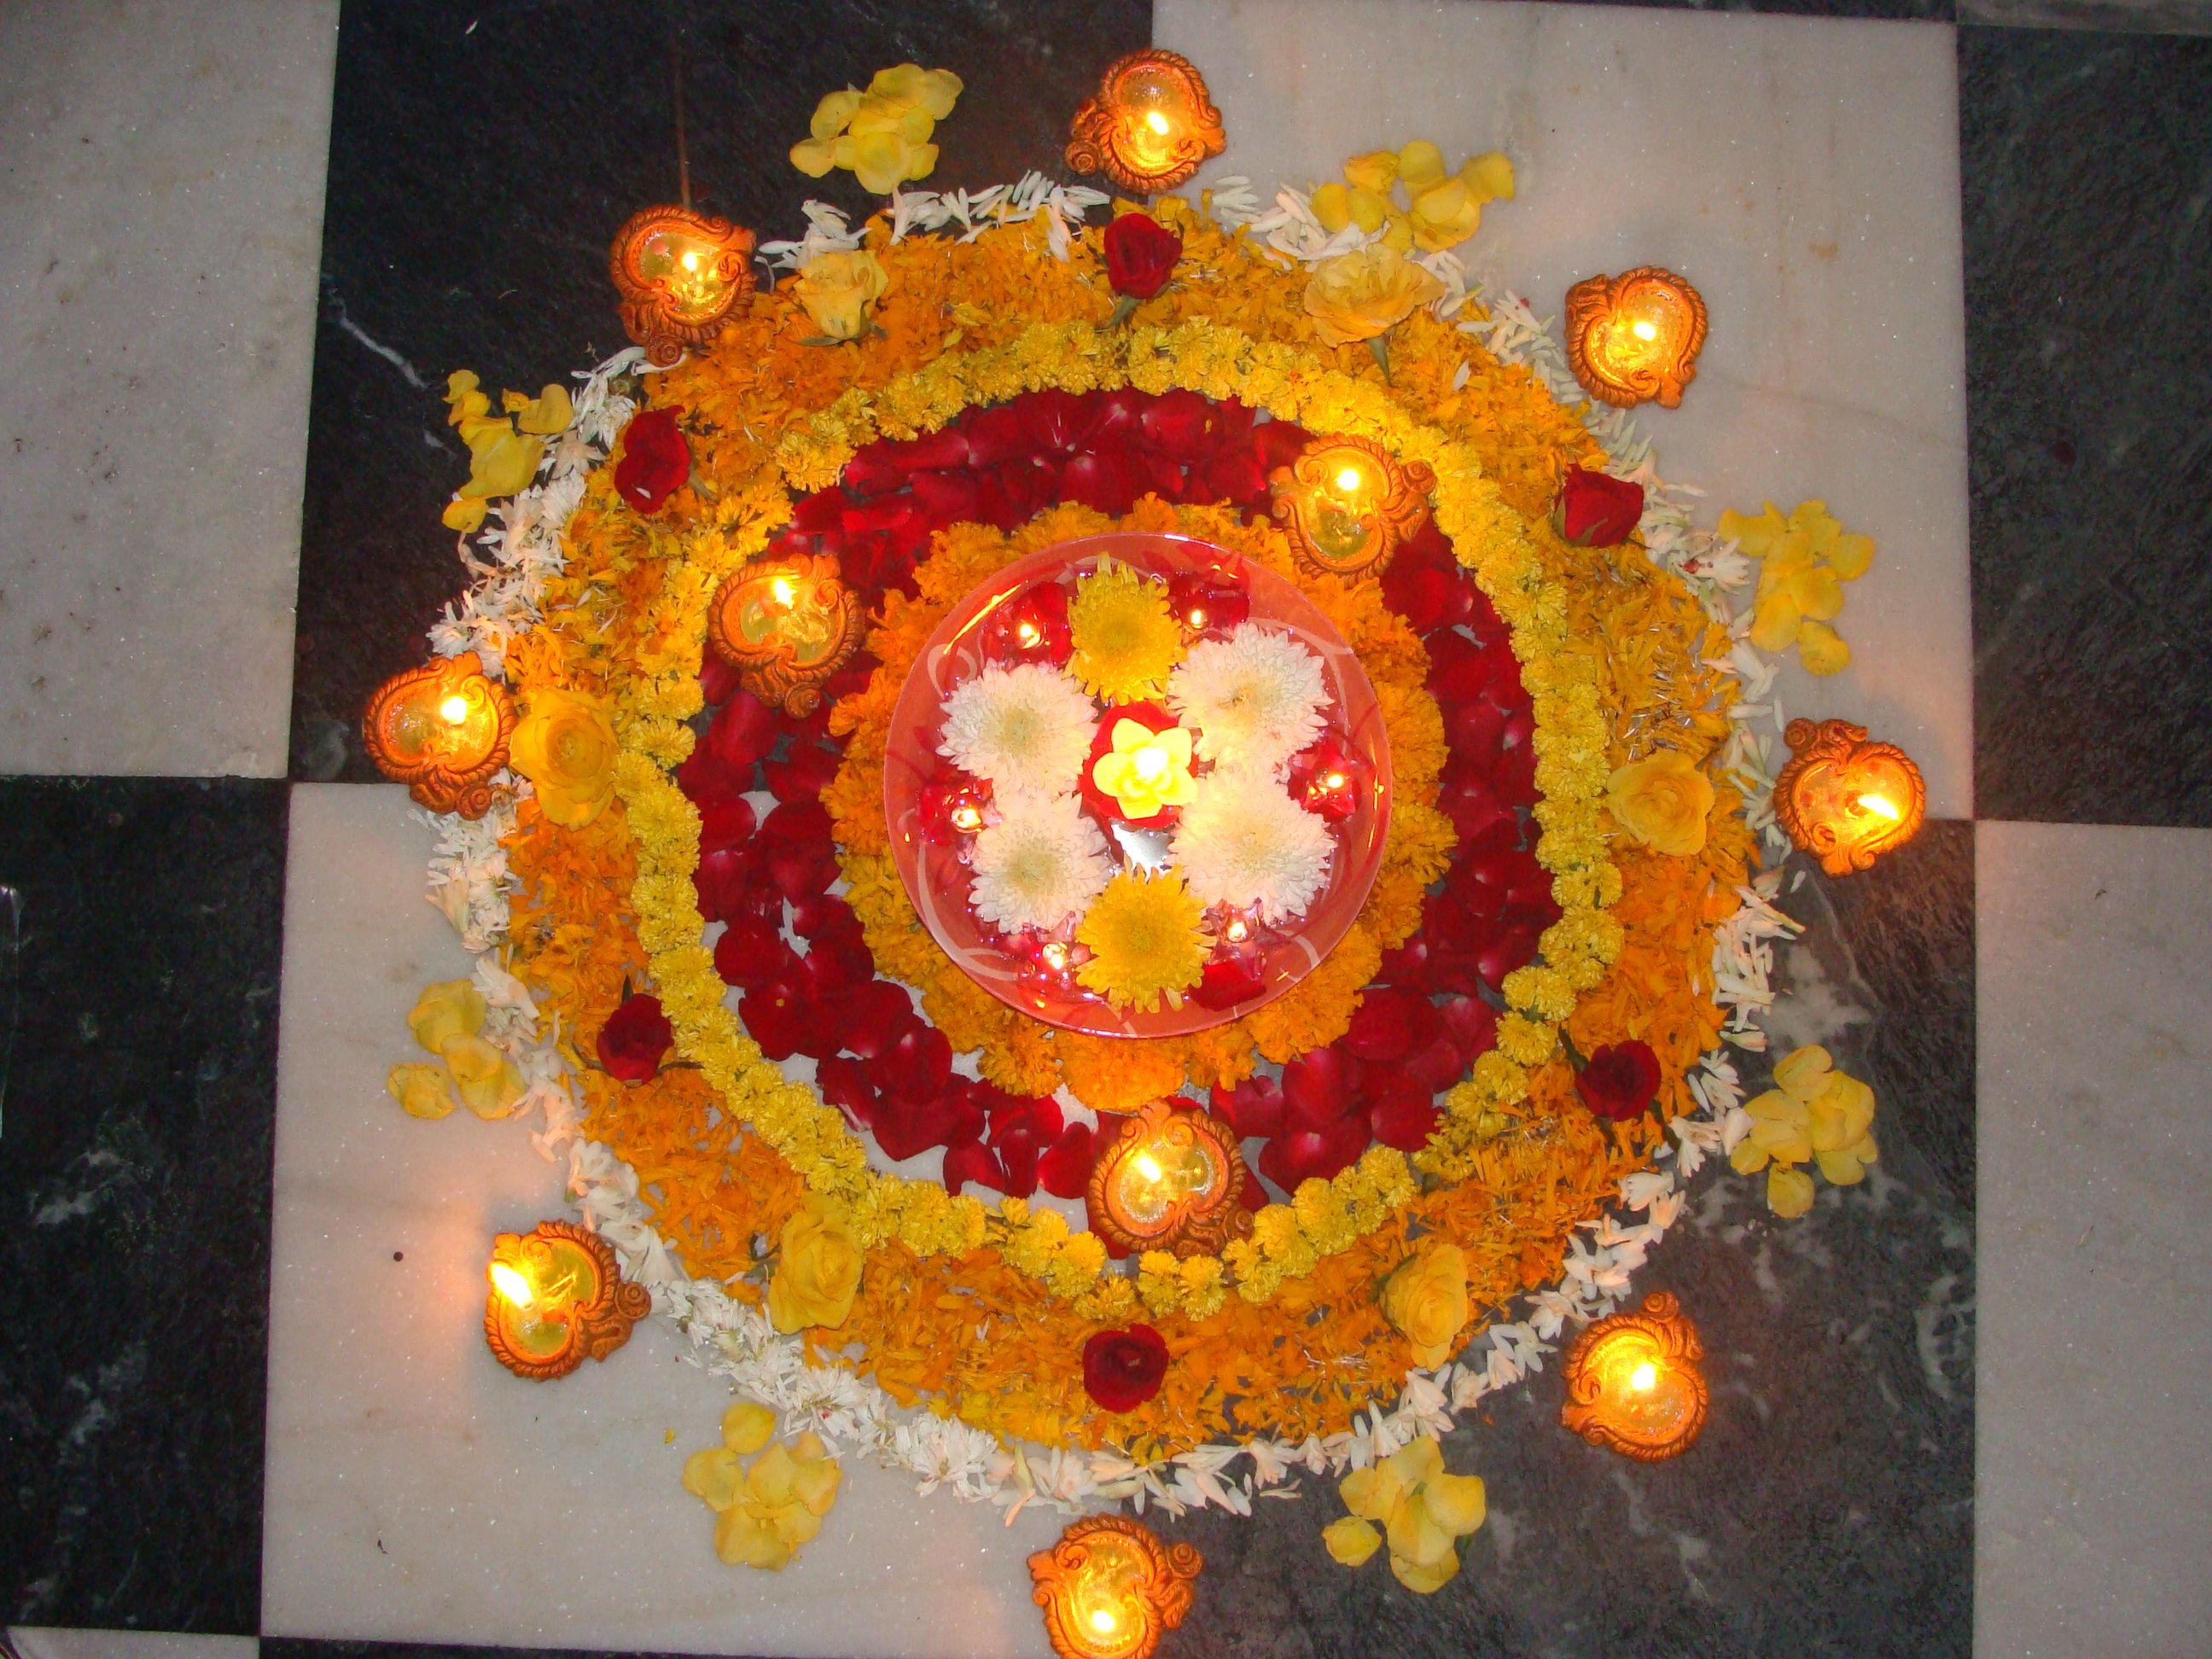 Rangoli Decorative Designs Made On Floor During Indian Festivals Festival Decorations Diwali Holiday Holiday Images